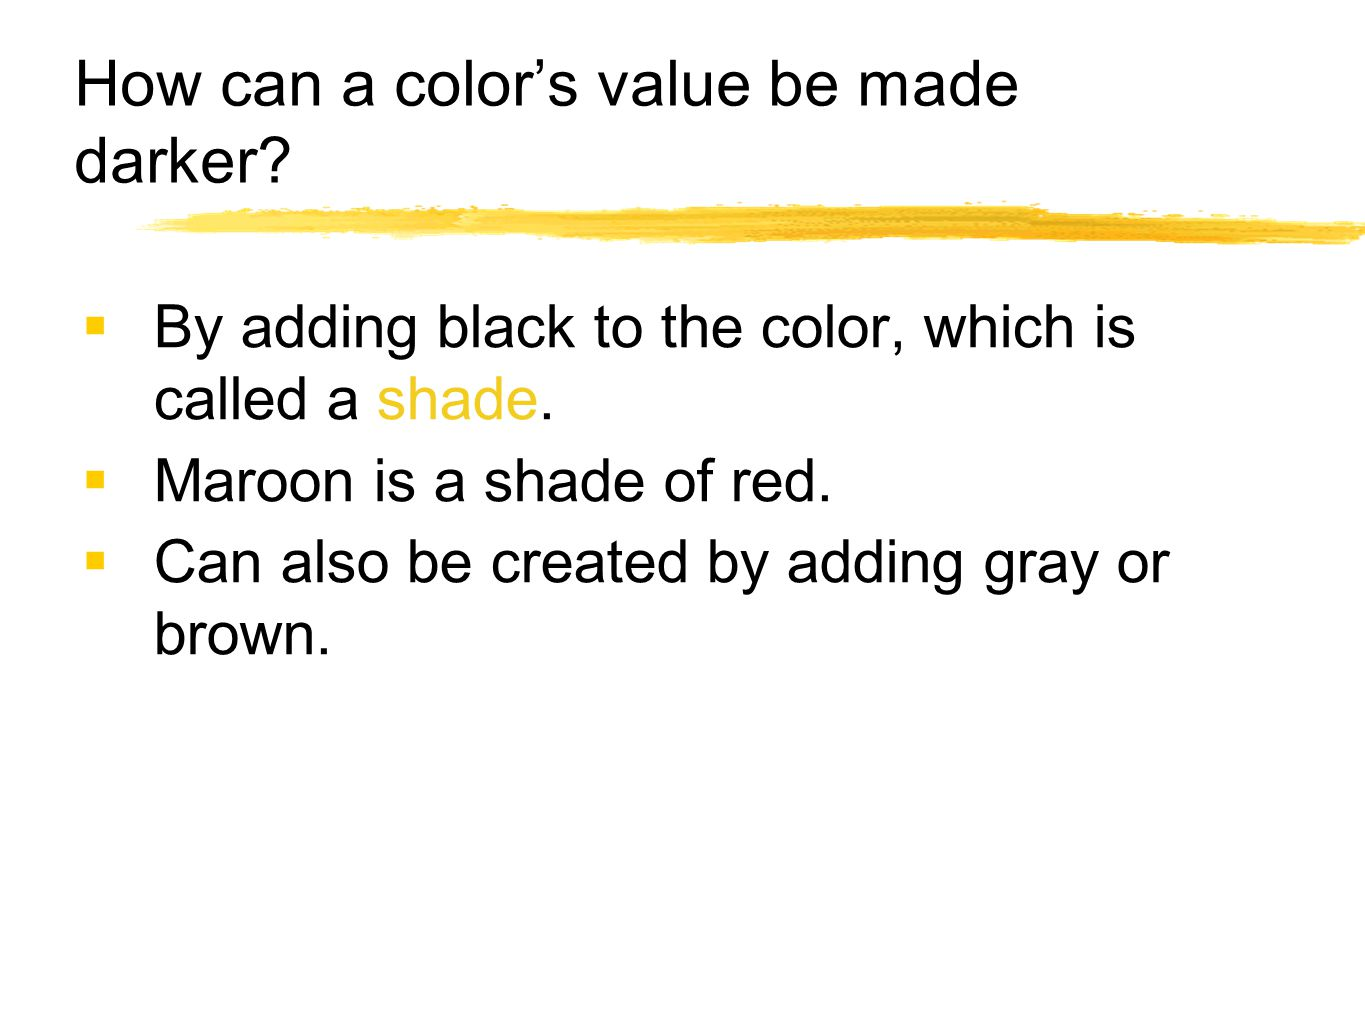 How can a color's value be made darker?  By adding black to the color, which is called a shade.  Maroon is a shade of red.  Can also be created by